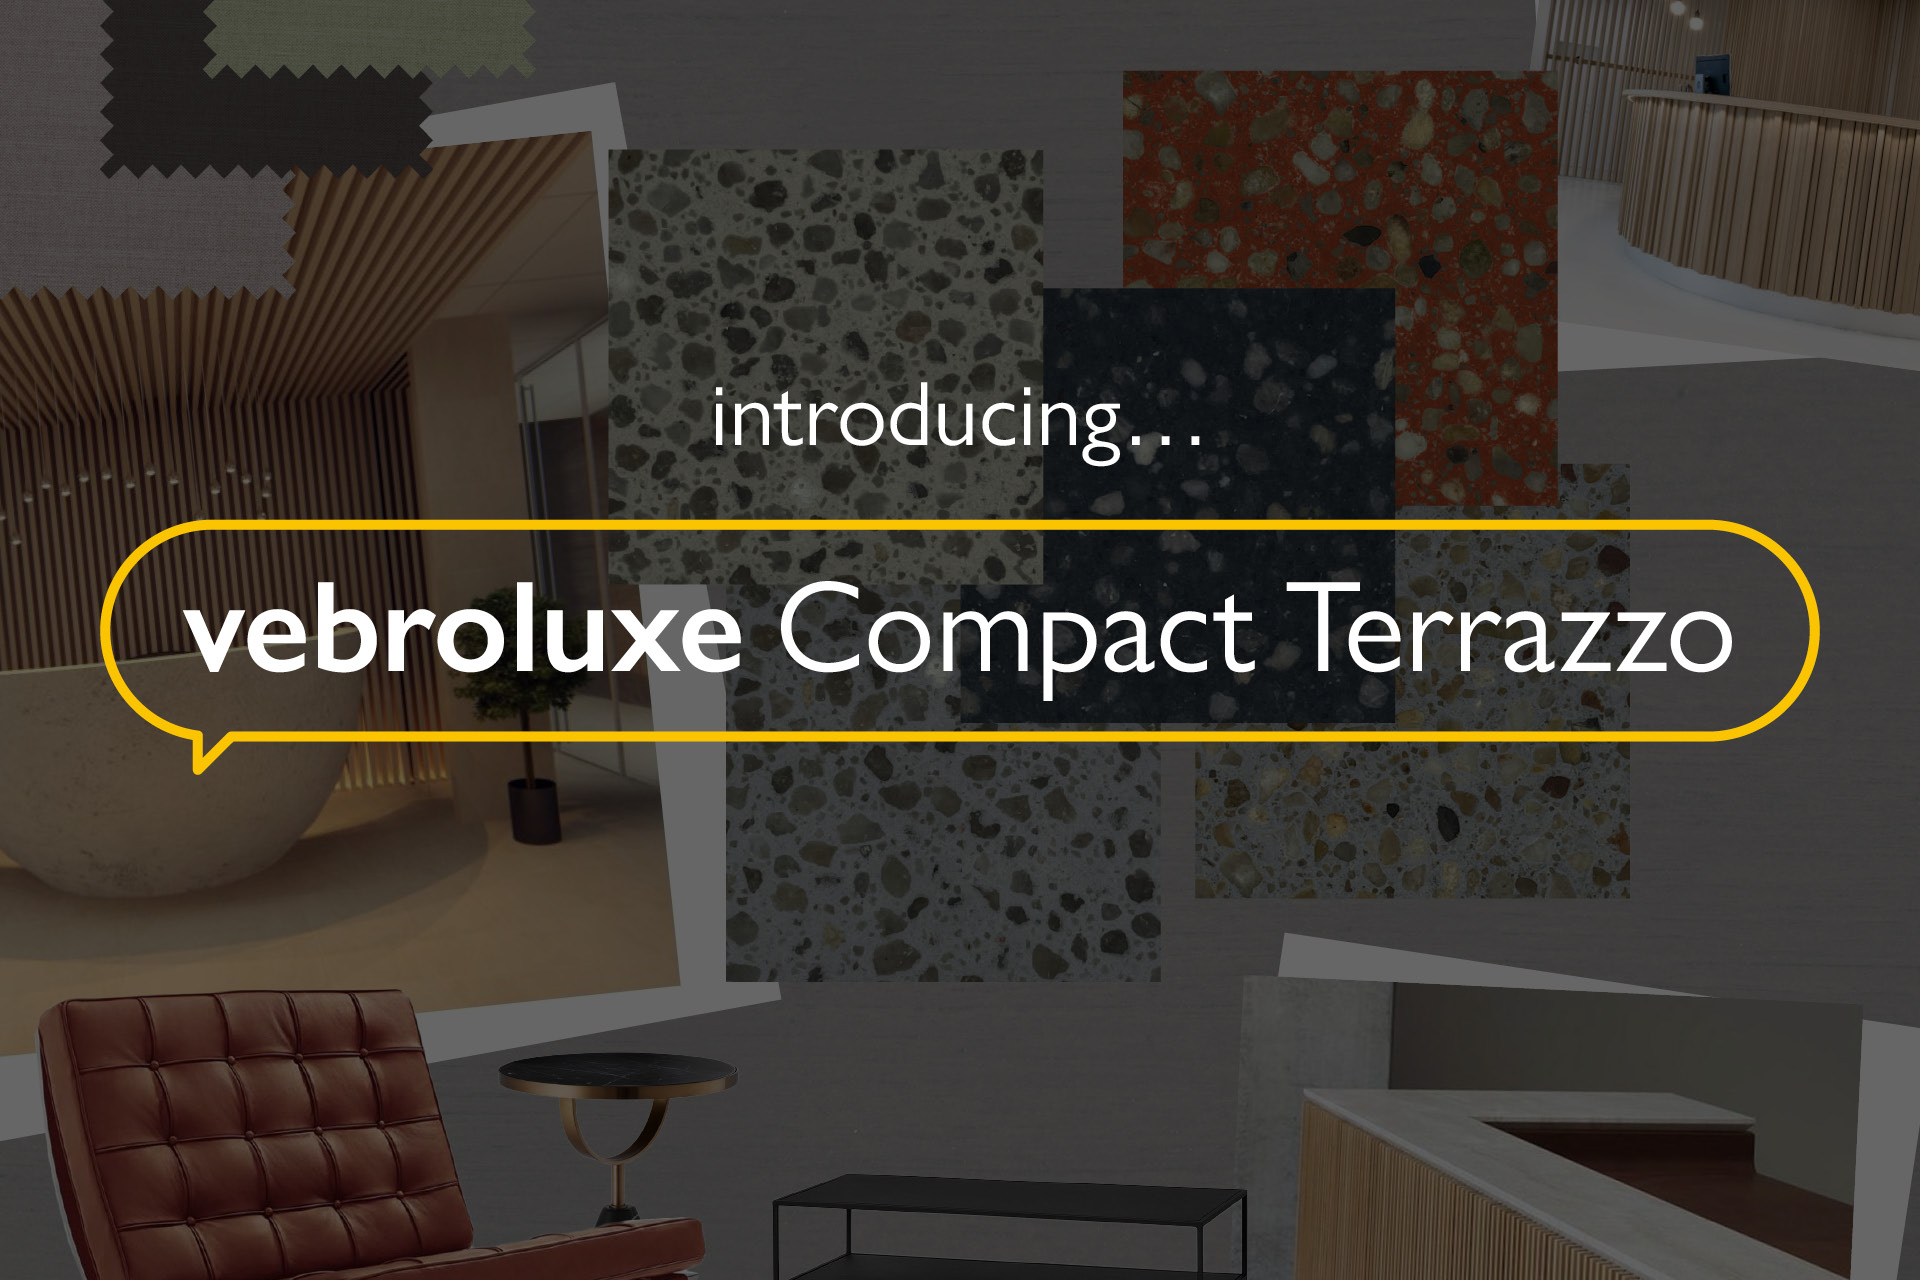 Introducing vebroluxe Compact Terrazzo